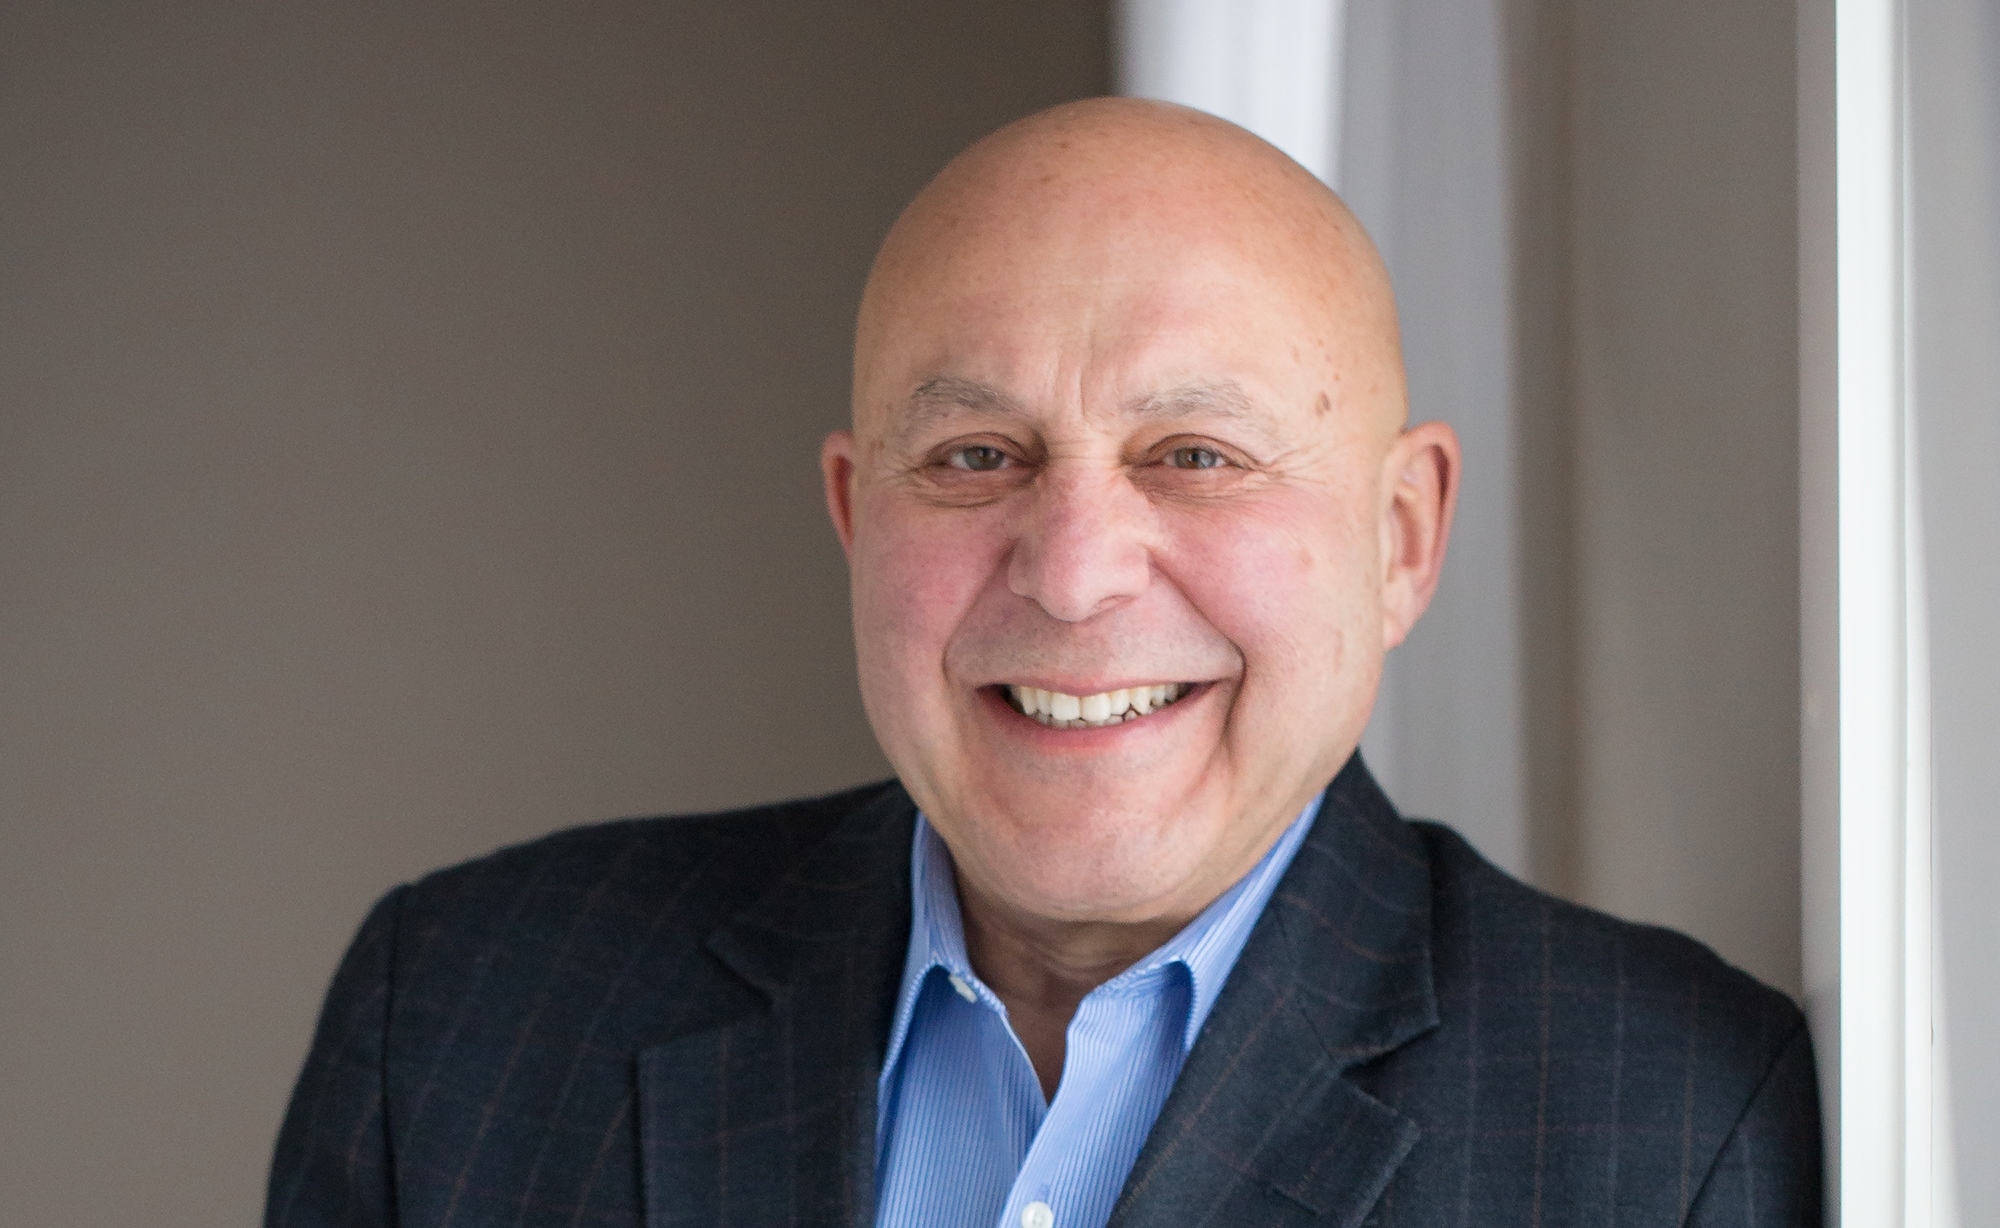 Republican Angelo Morinello ousted incumbent John Ceretto for the Niagara County Assembly seat.